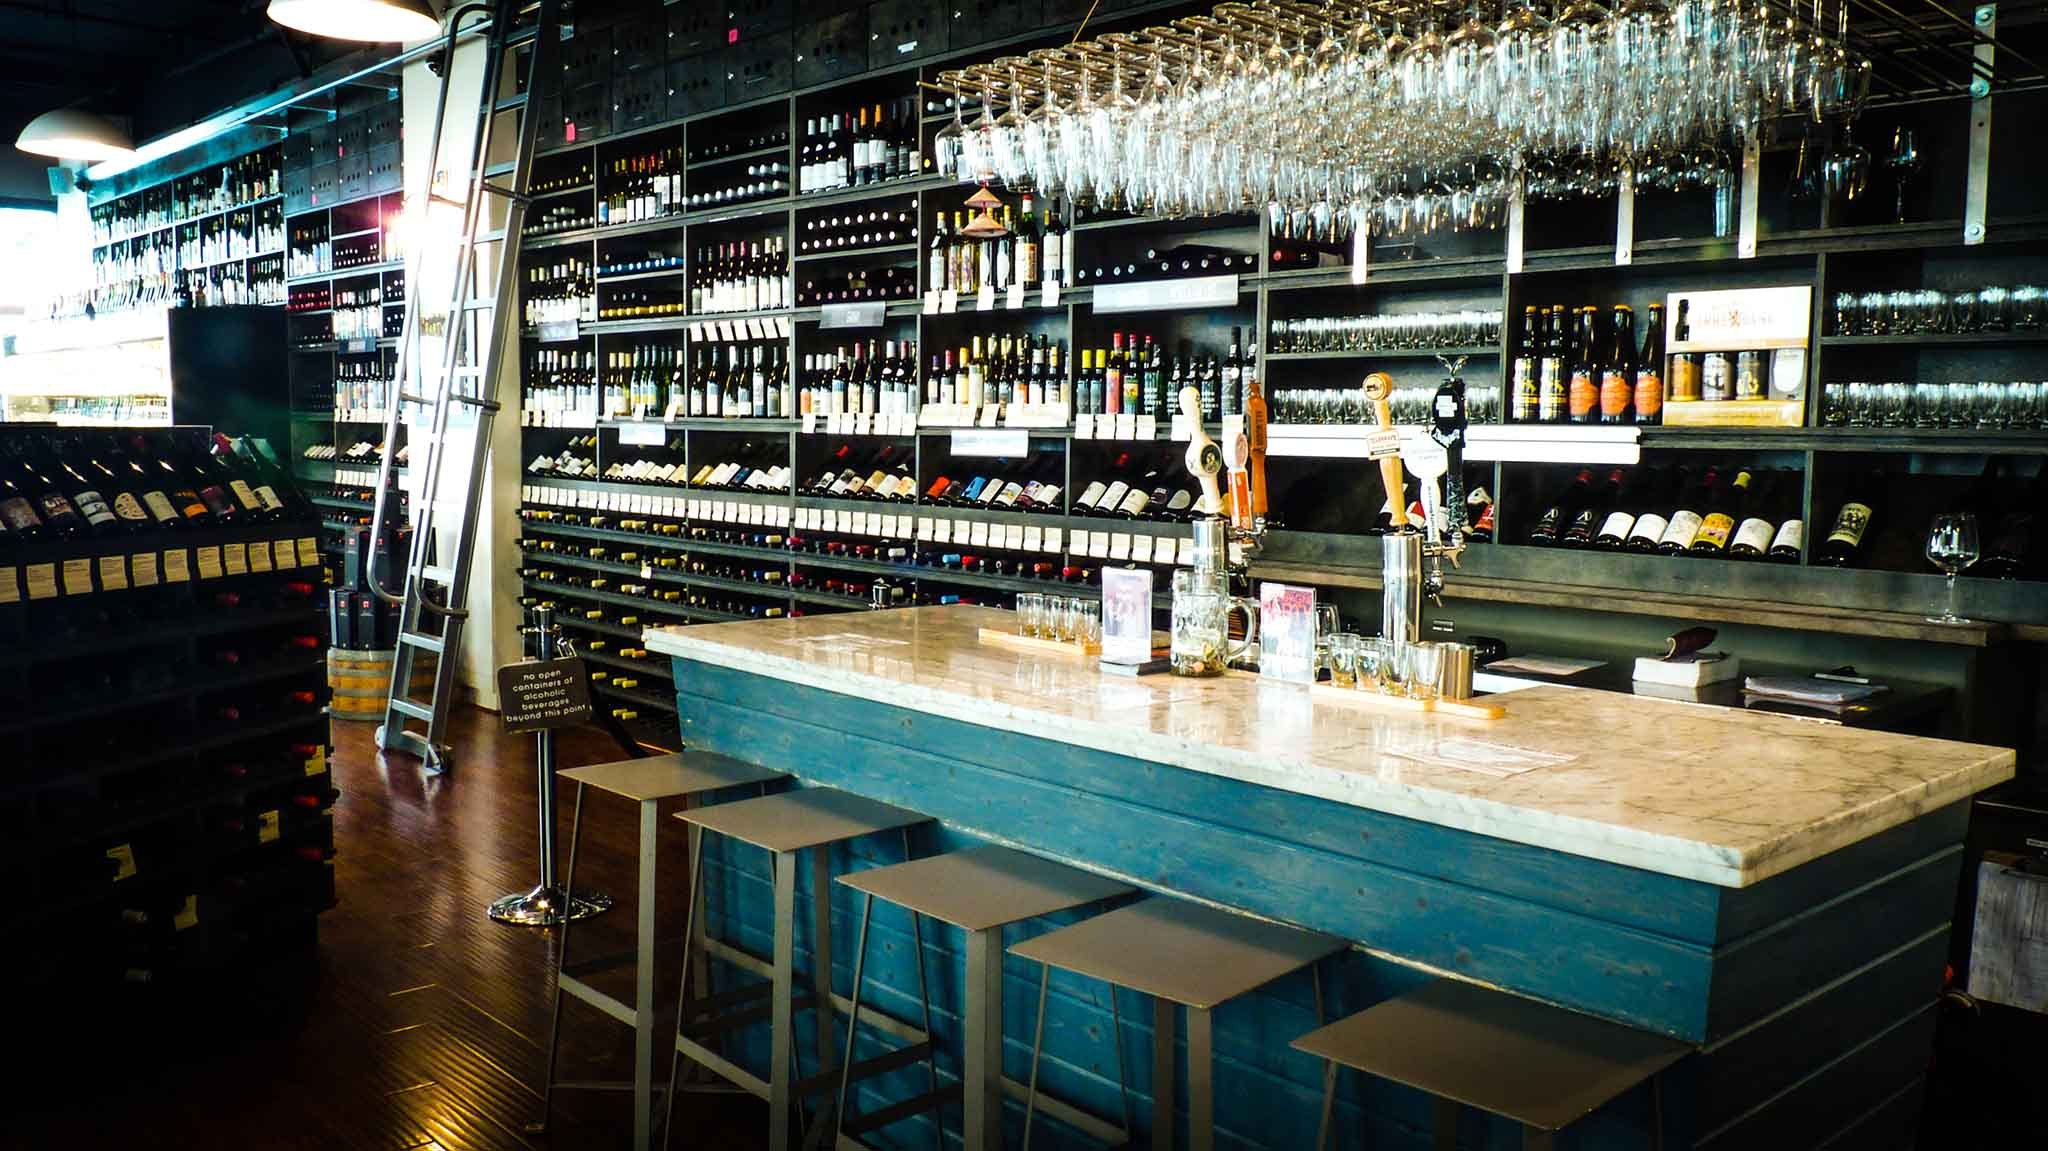 Go wine tasting without leaving the city